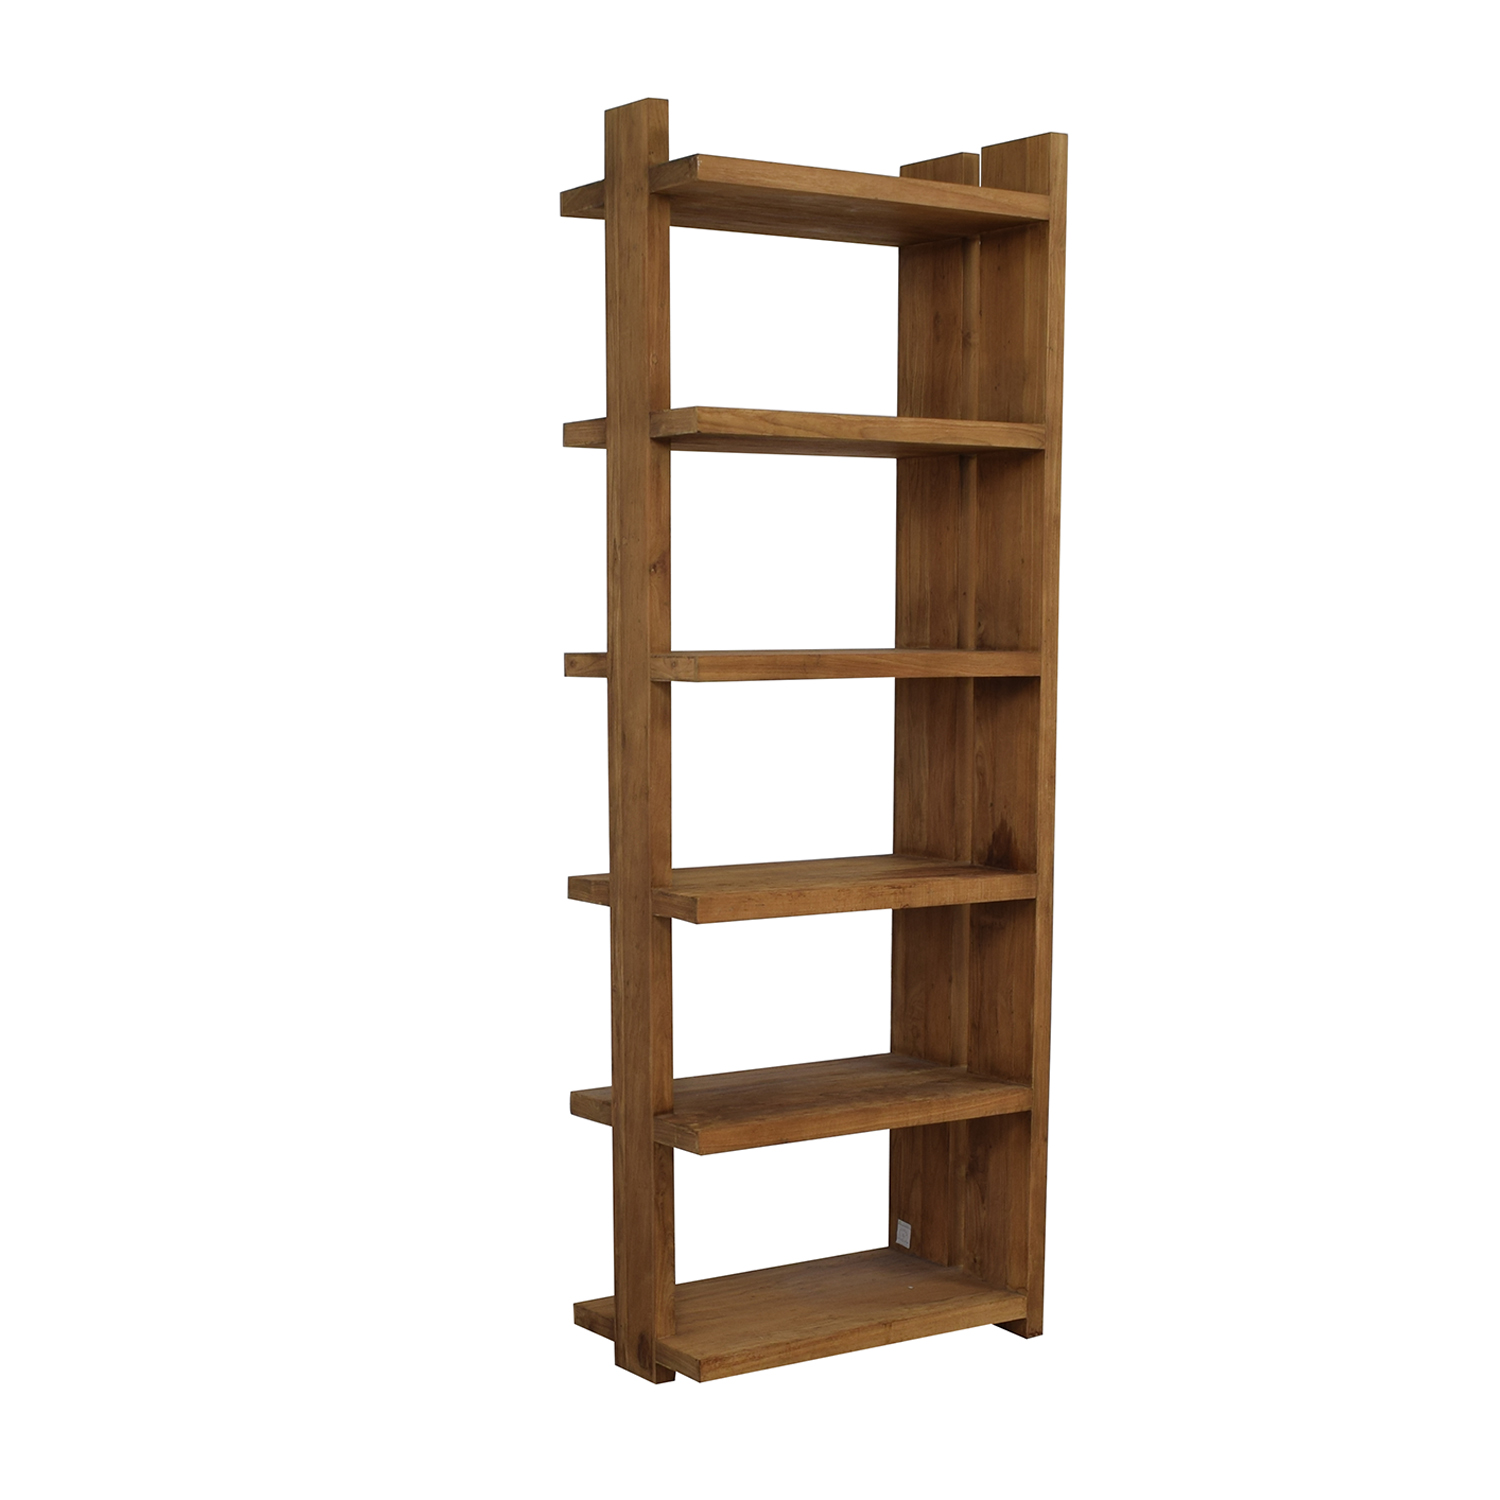 ABC Carpet & Home ABC Carpet & Home Harmony Etagere Bookcase Brown